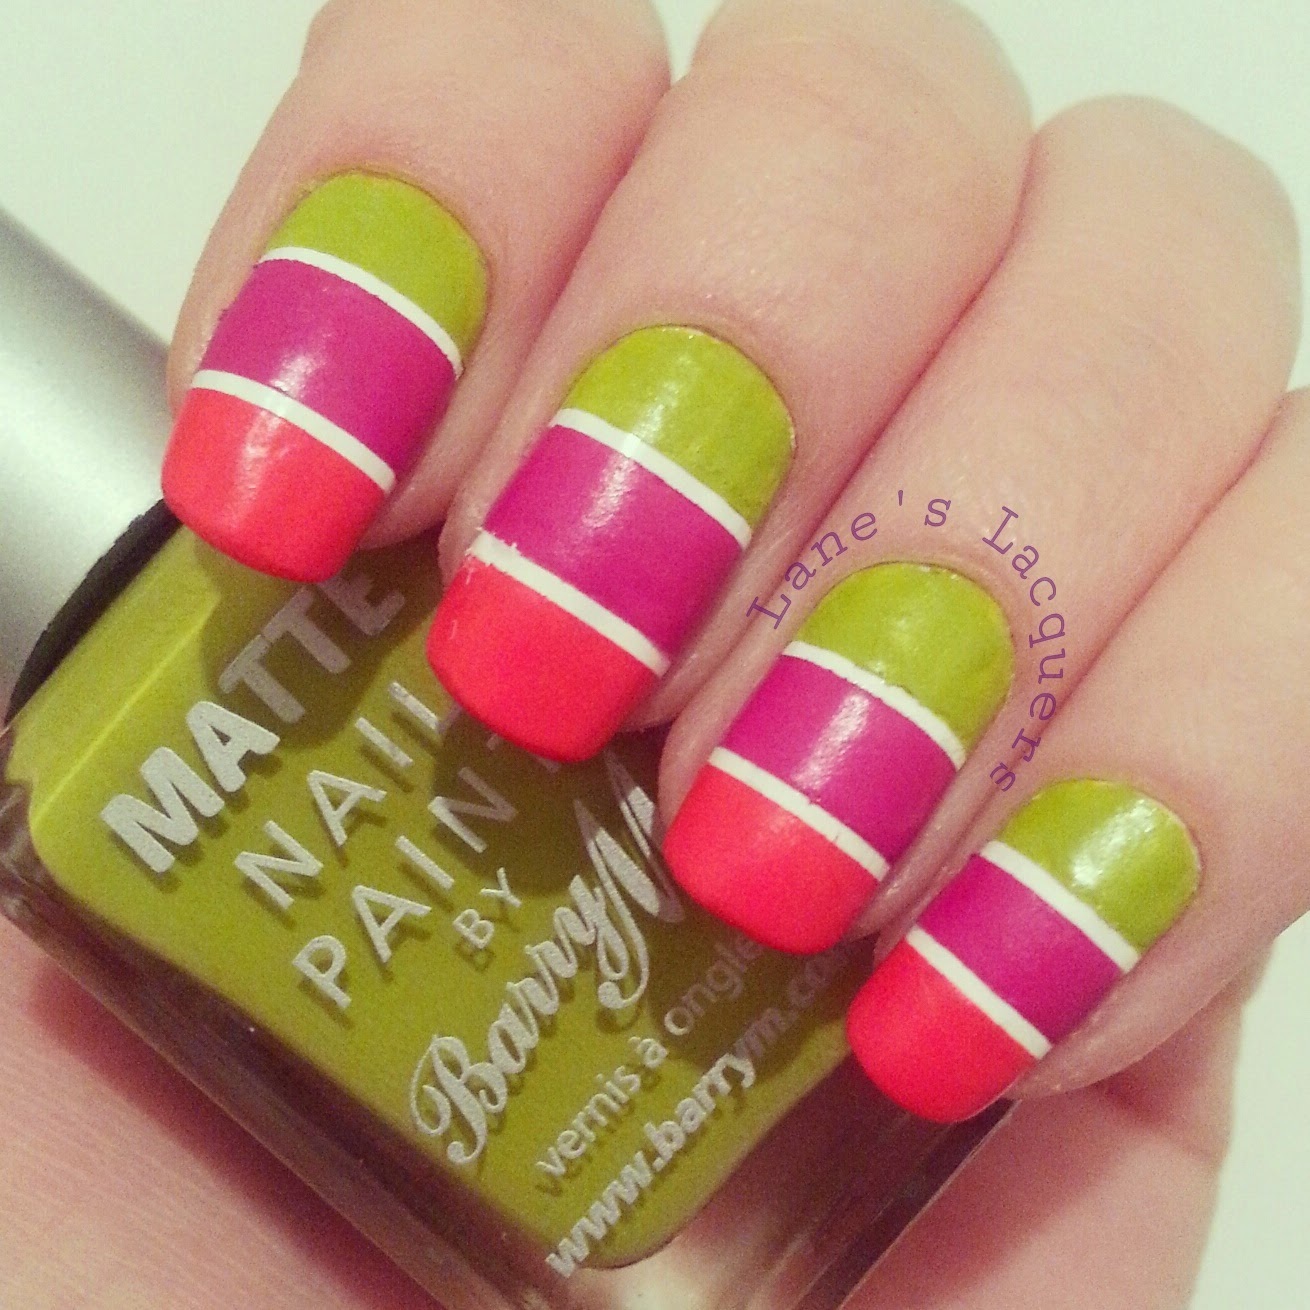 barry-m-summer-matte-trio-tape-nail-art (1)